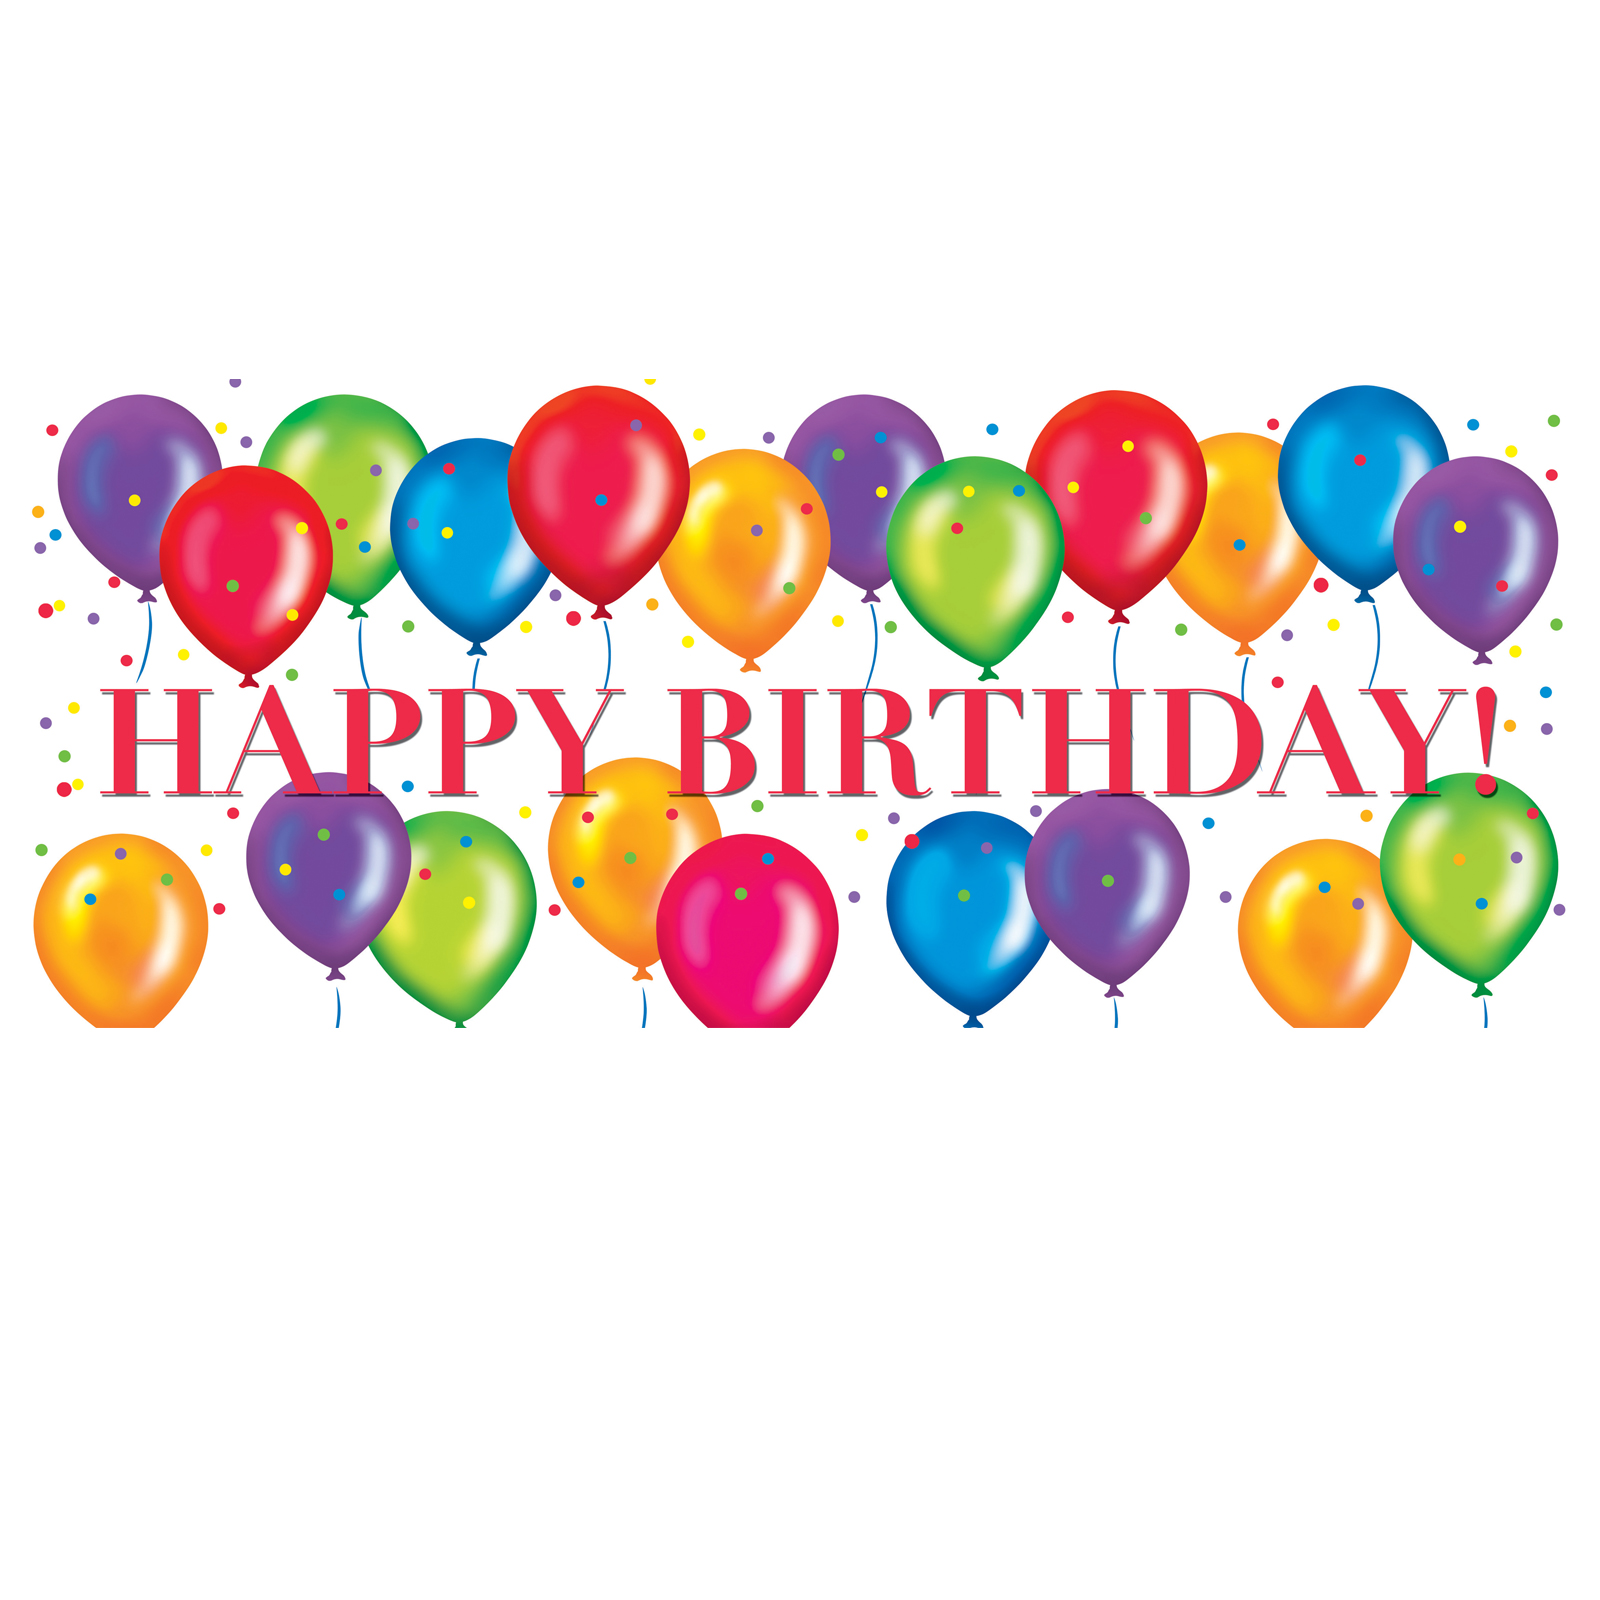 free birthday images for facebook